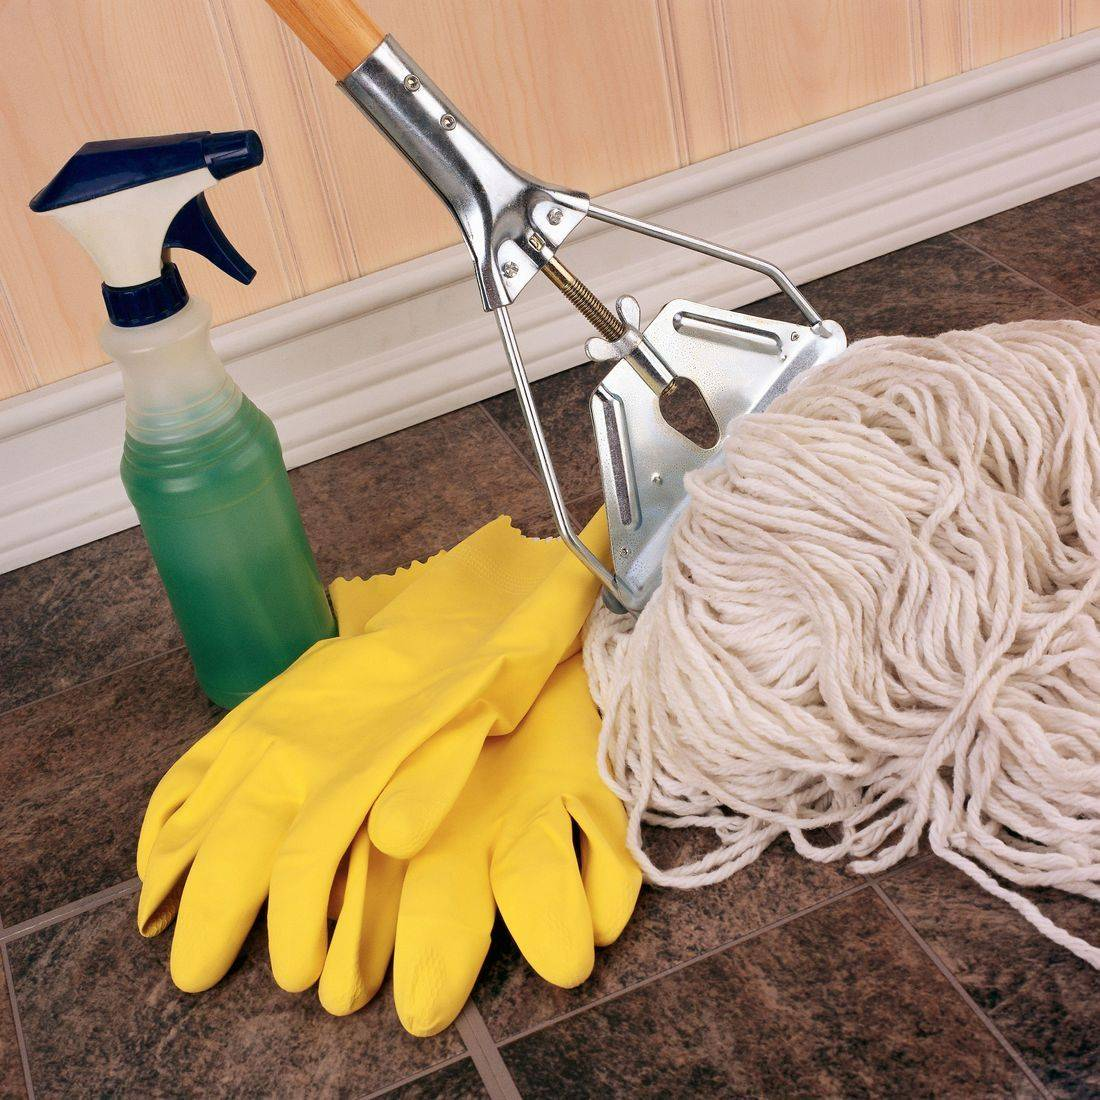 House cleaning service Midland TX